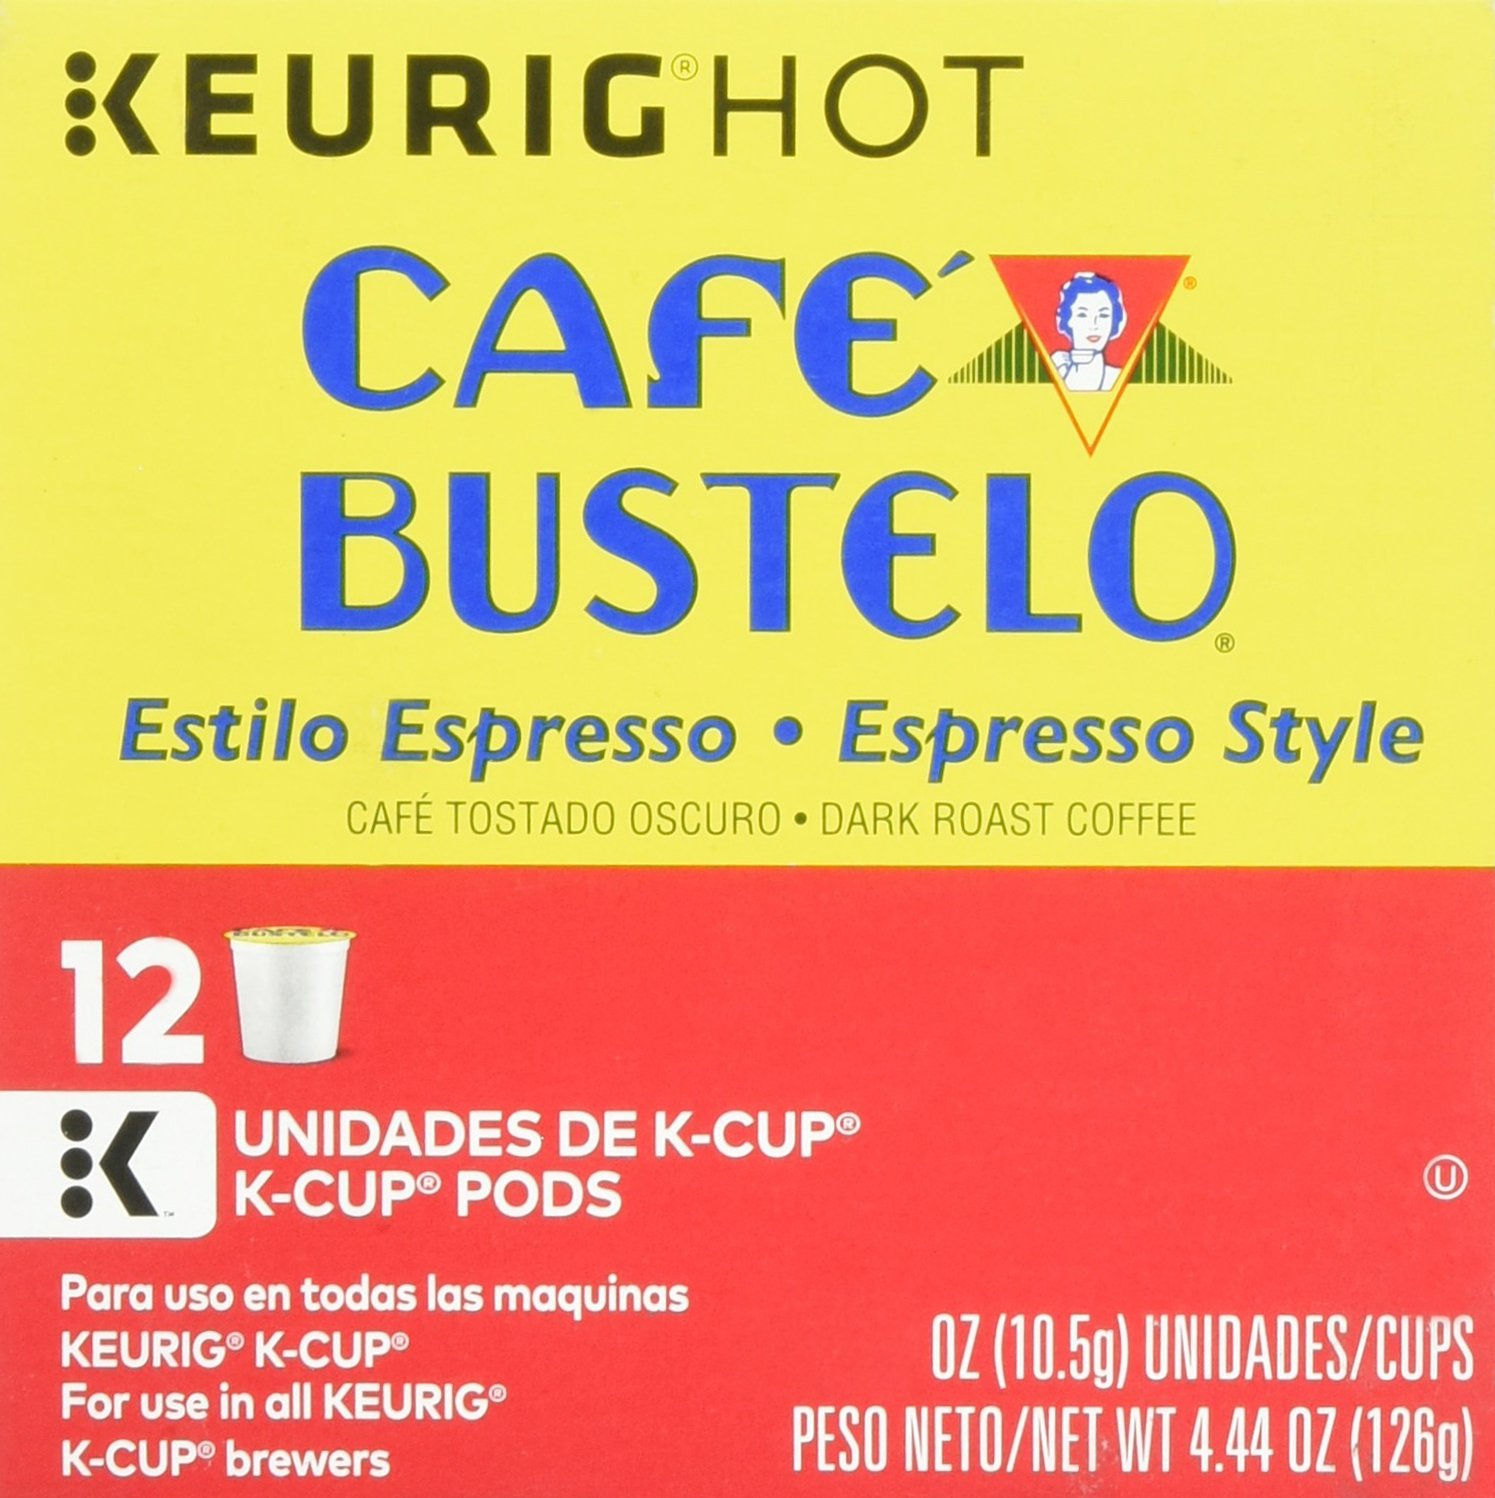 Cafe Bustelo, K-Cup Single Serve, 12 Count, 4.44oz Box (Pack of 3) (Espresso Style): Amazon.com: Grocery & Gourmet Food